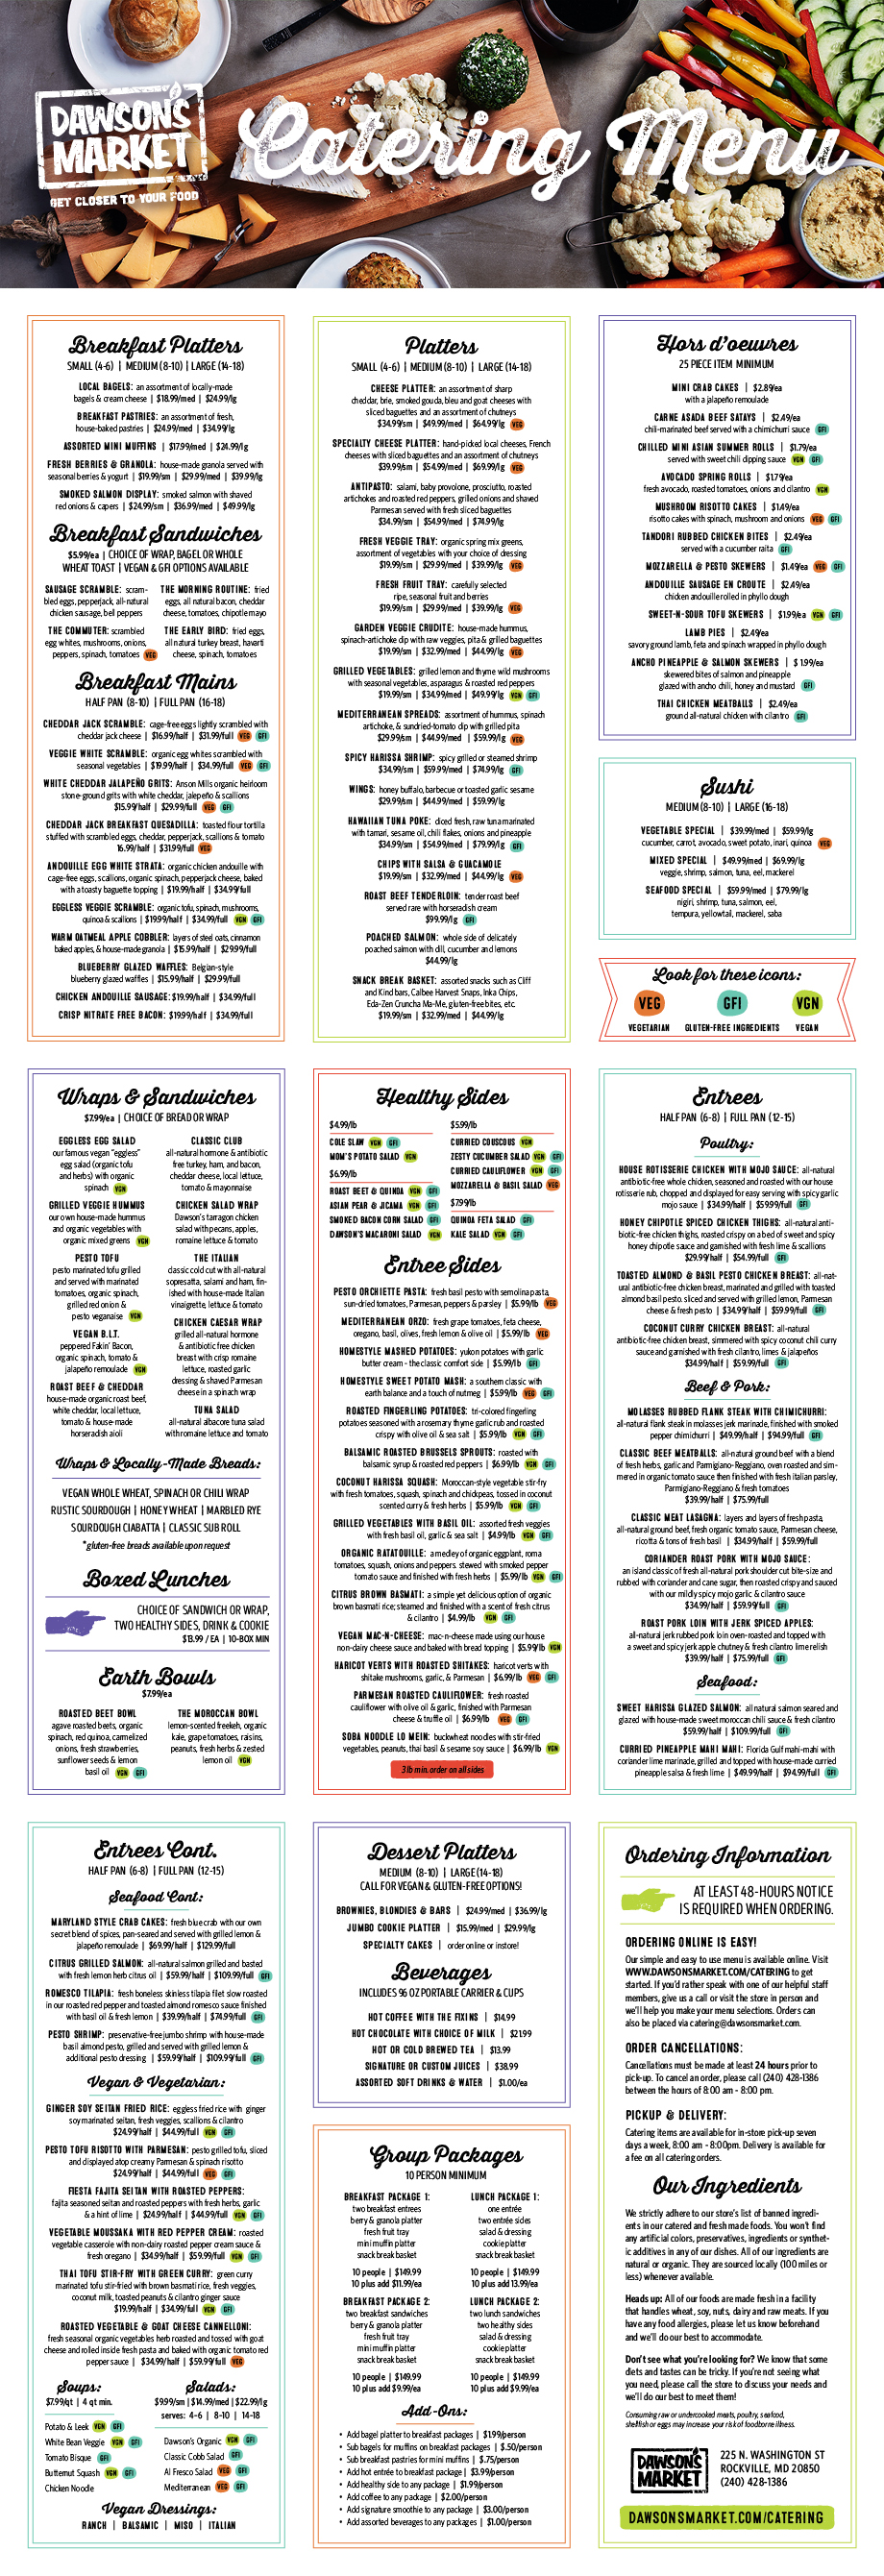 DM Catering Menu 2016 vertical web.jpg